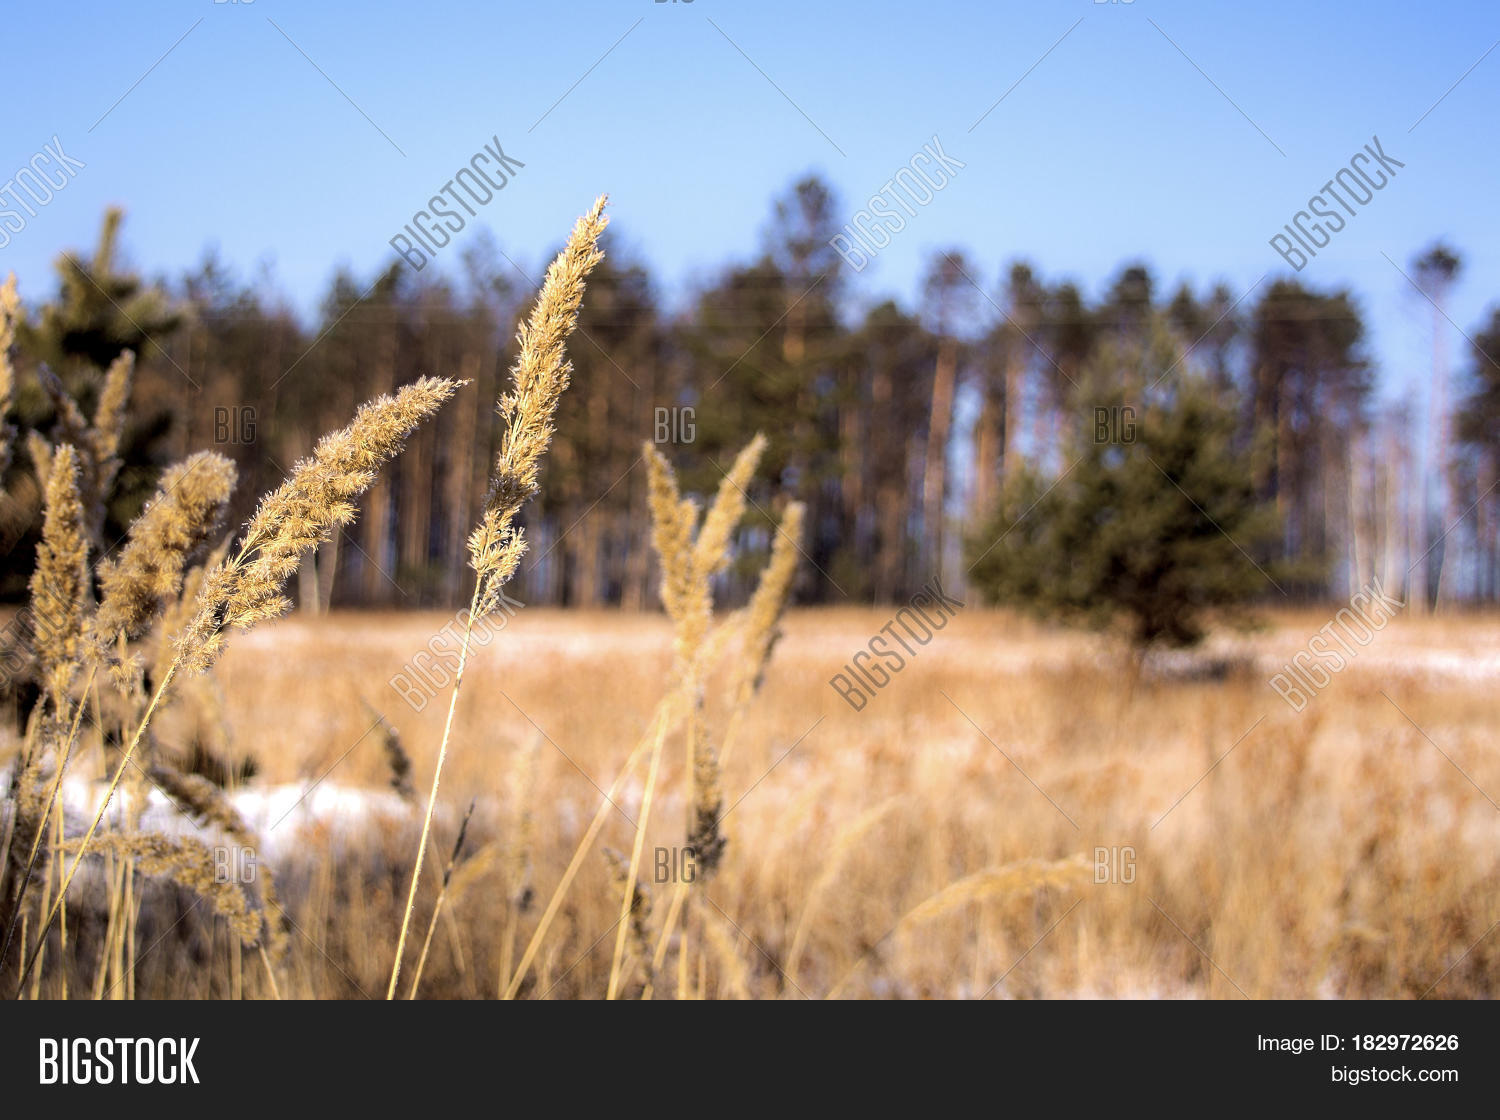 dry grass field background. Many Dry Meadow Flowers In Winter Field. Nature Background. Snowy Field And Plants. Grass Background